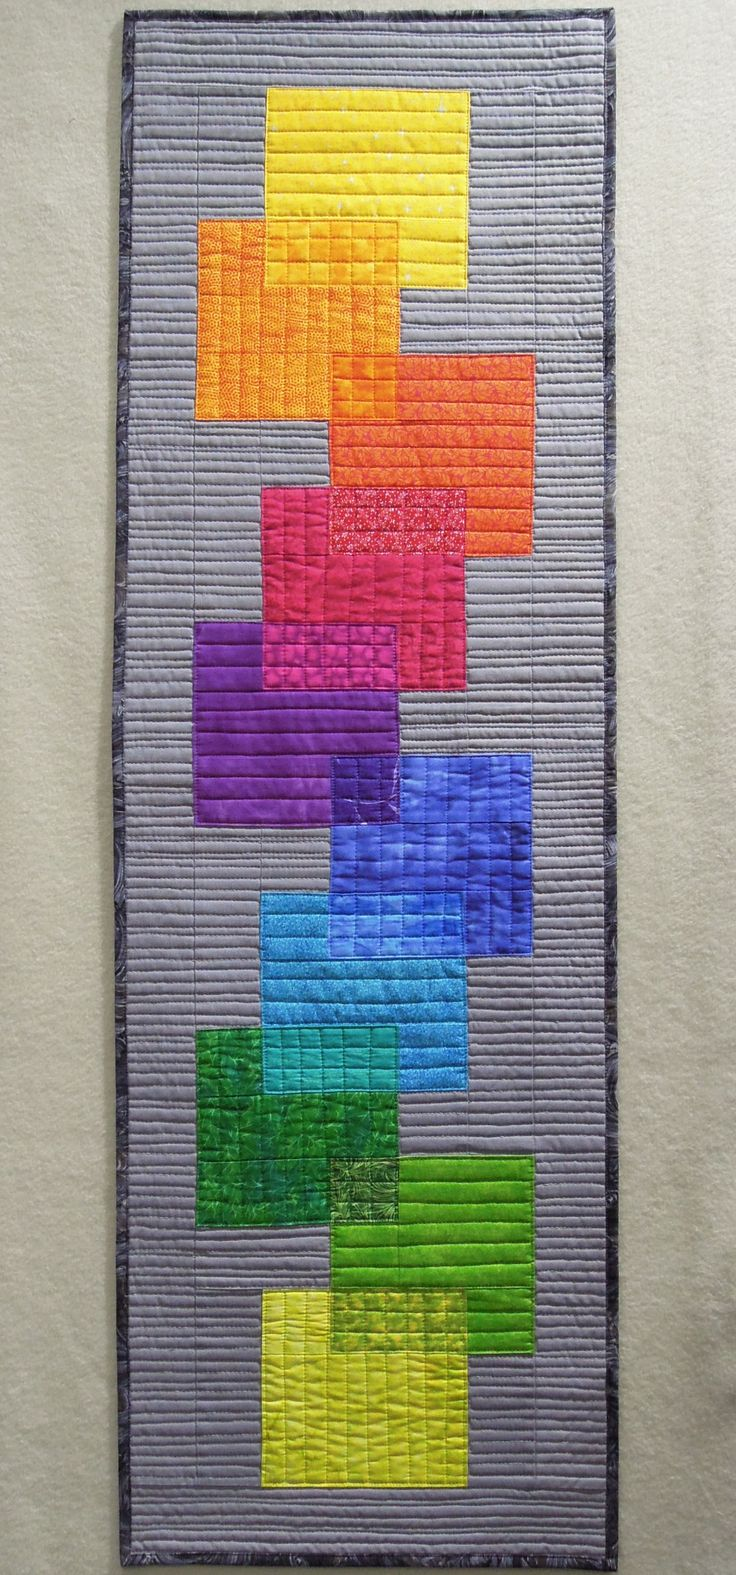 Rainbow Transparency Skinny Quilt. Techniques used: machine piecing; illusion of transparency. Machine pieced and quilted. Finished size: 14.25″ by 45″. The selection of the fabrics create the illusion of transparency, but in actuality the fabrics are all pieced – there is no actual overlapping of fabrics. I used a solid medium gray for the background, and a mottled gray-charcoal-black for the binding. The background was quilted with free-motion organic, mostly straight lines.